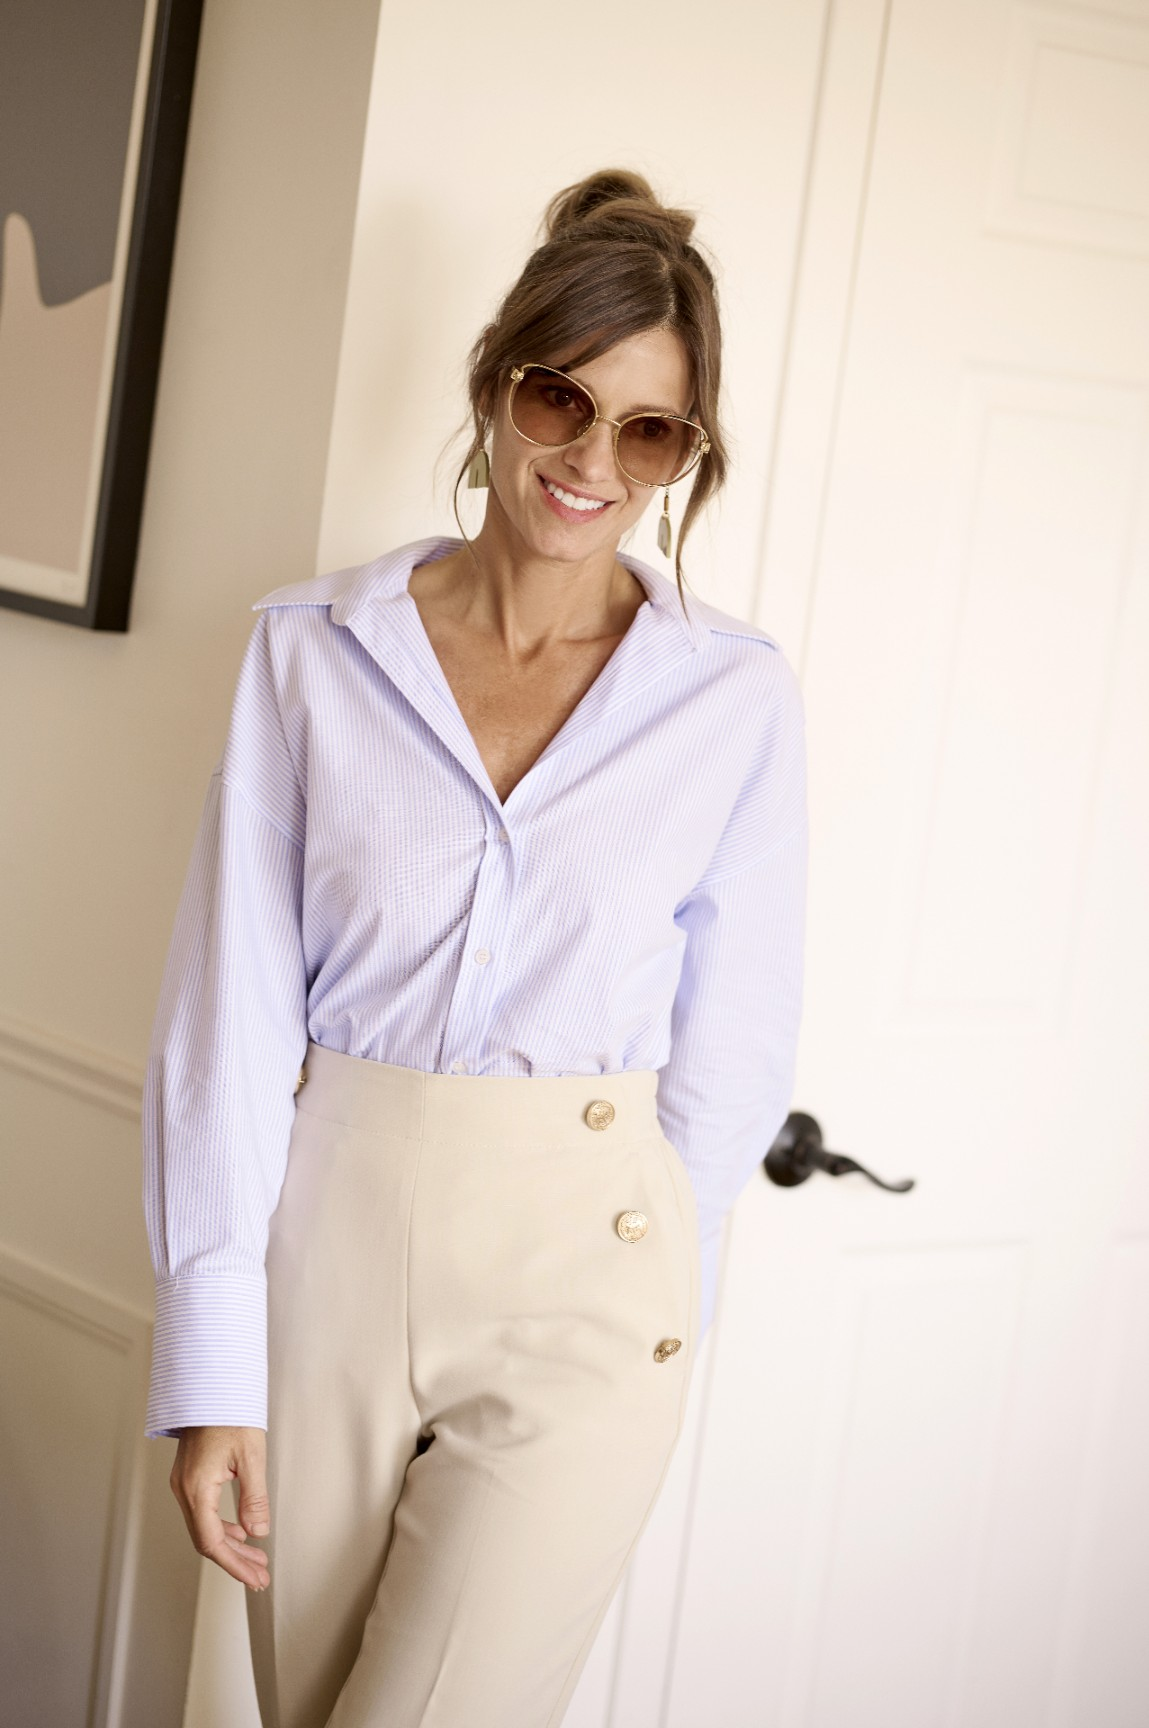 Classy business casual woman with sunglasses